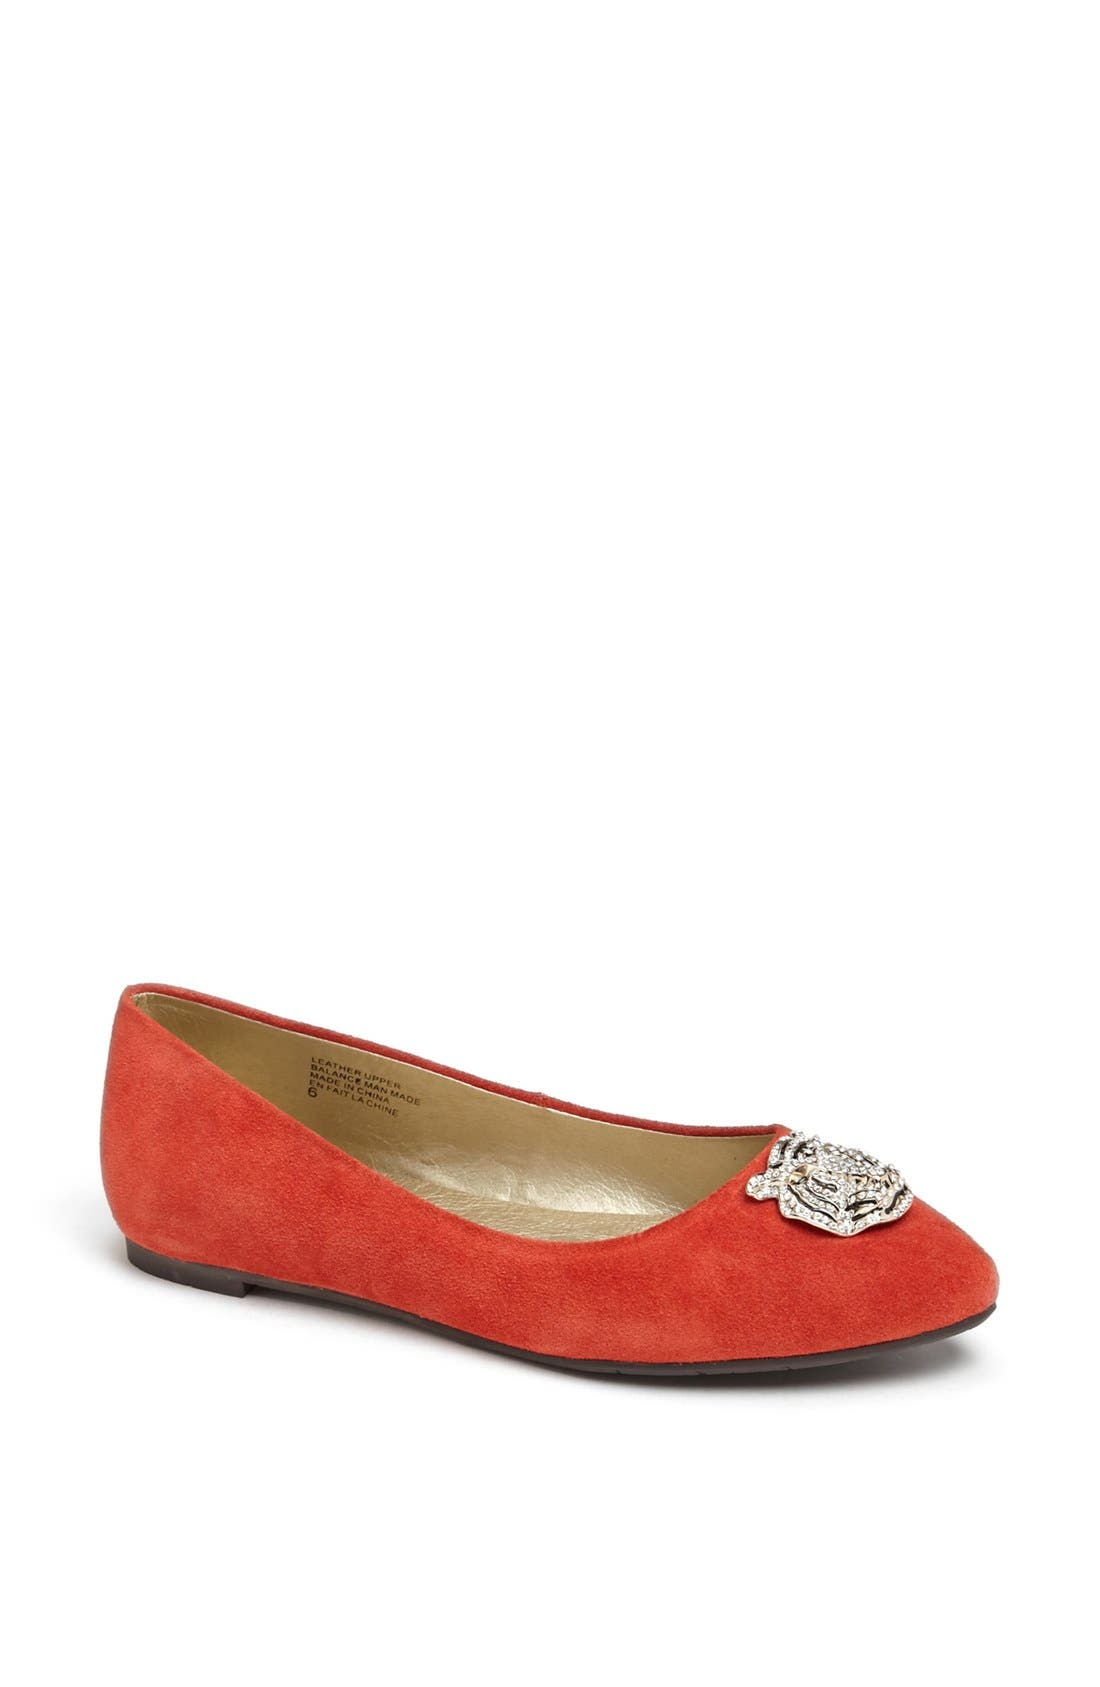 Alternate Image 1 Selected - BC Footwear 'Tempo' Tiger Charm Flat